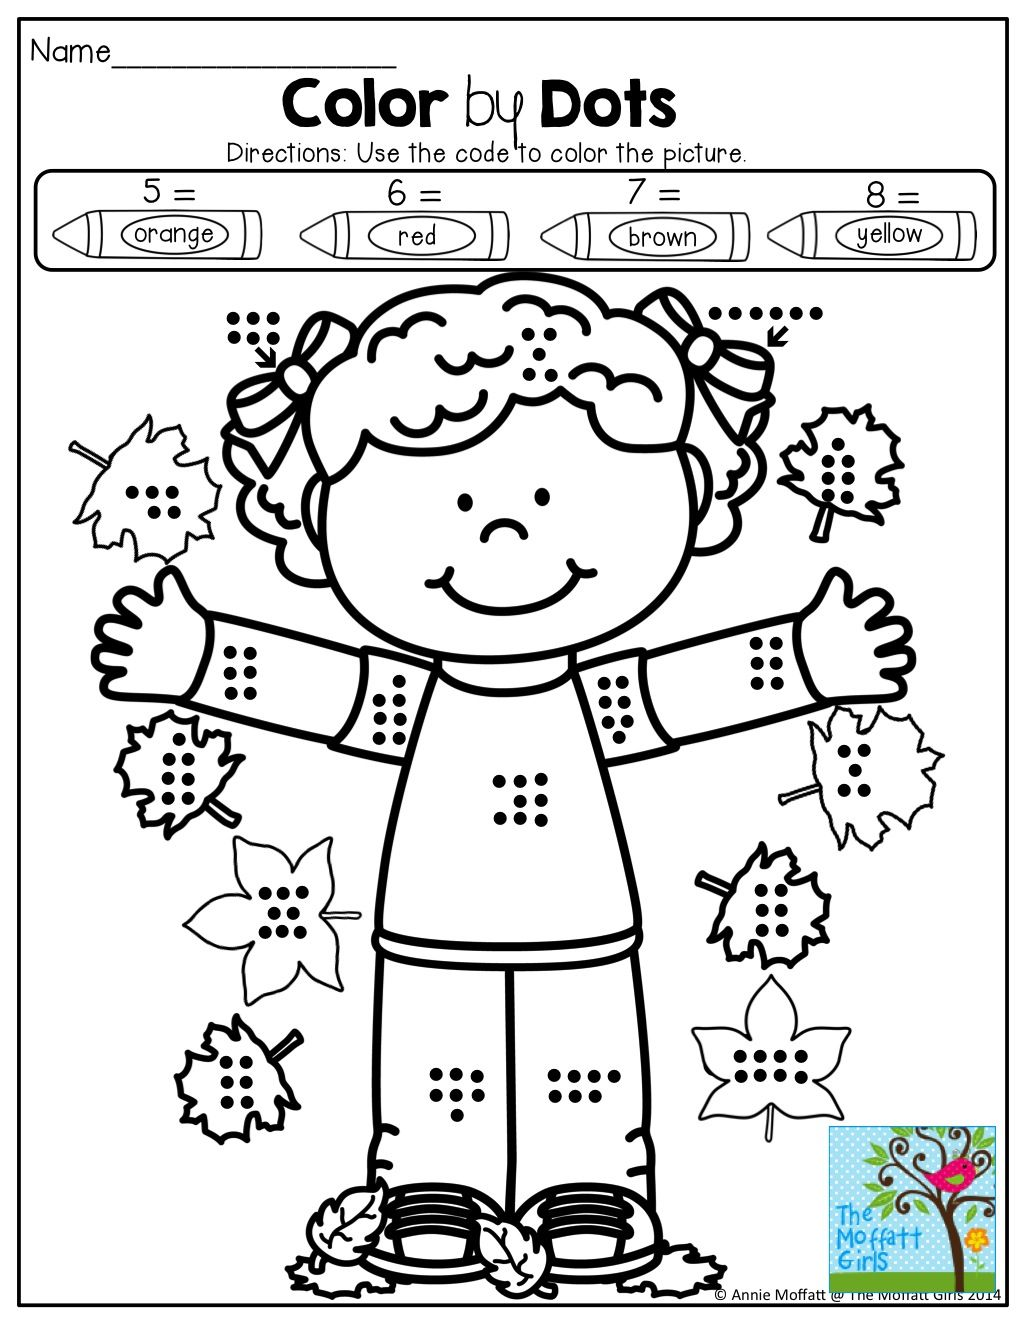 Count The Dots And Color According To The Code Fun And Super Effective For Counting Practice